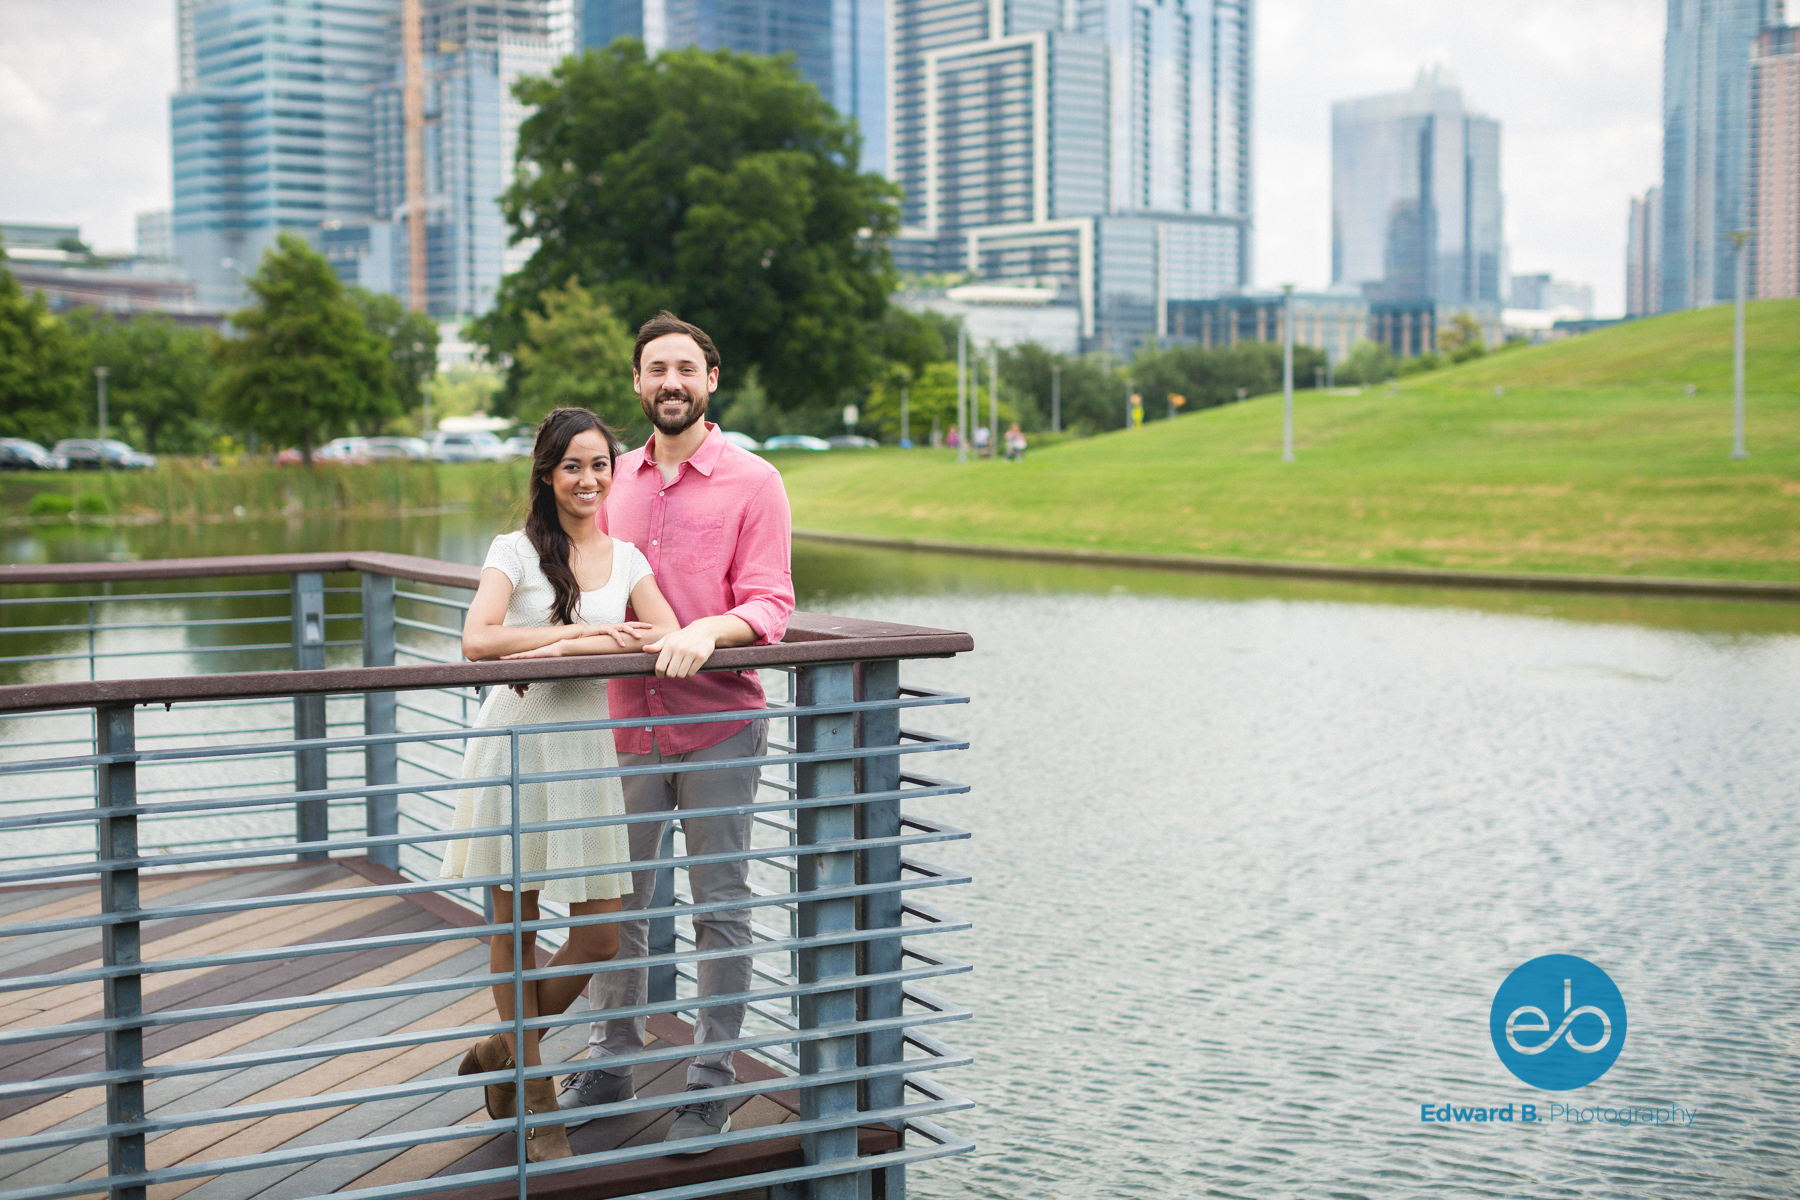 austin-texas-engagement-portraits-12.jpg